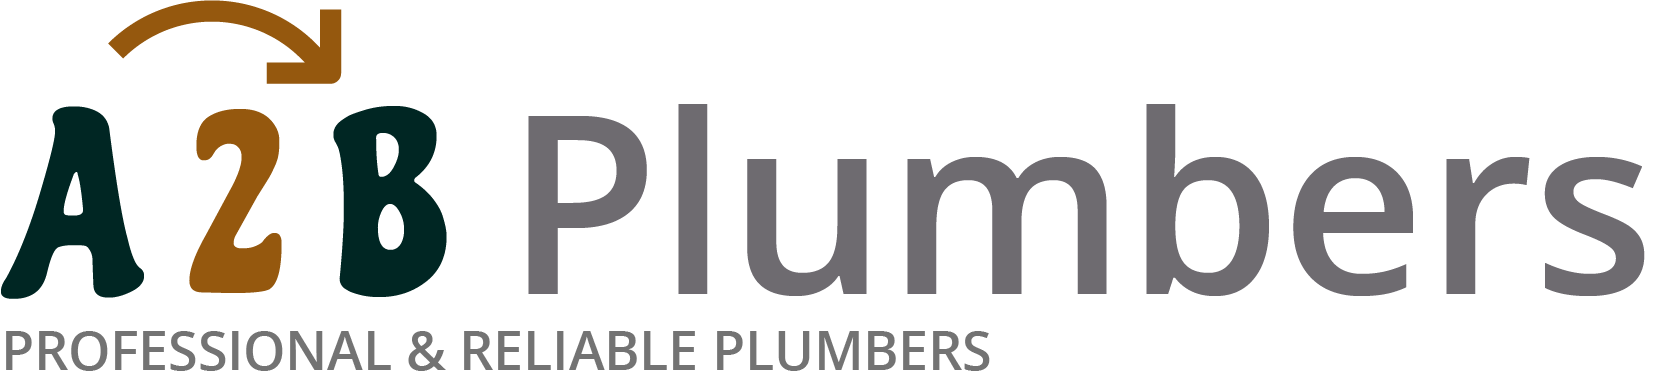 If you need a boiler installed, a radiator repaired or a leaking tap fixed, call us now - we provide services for properties in Plymstock and the local area.